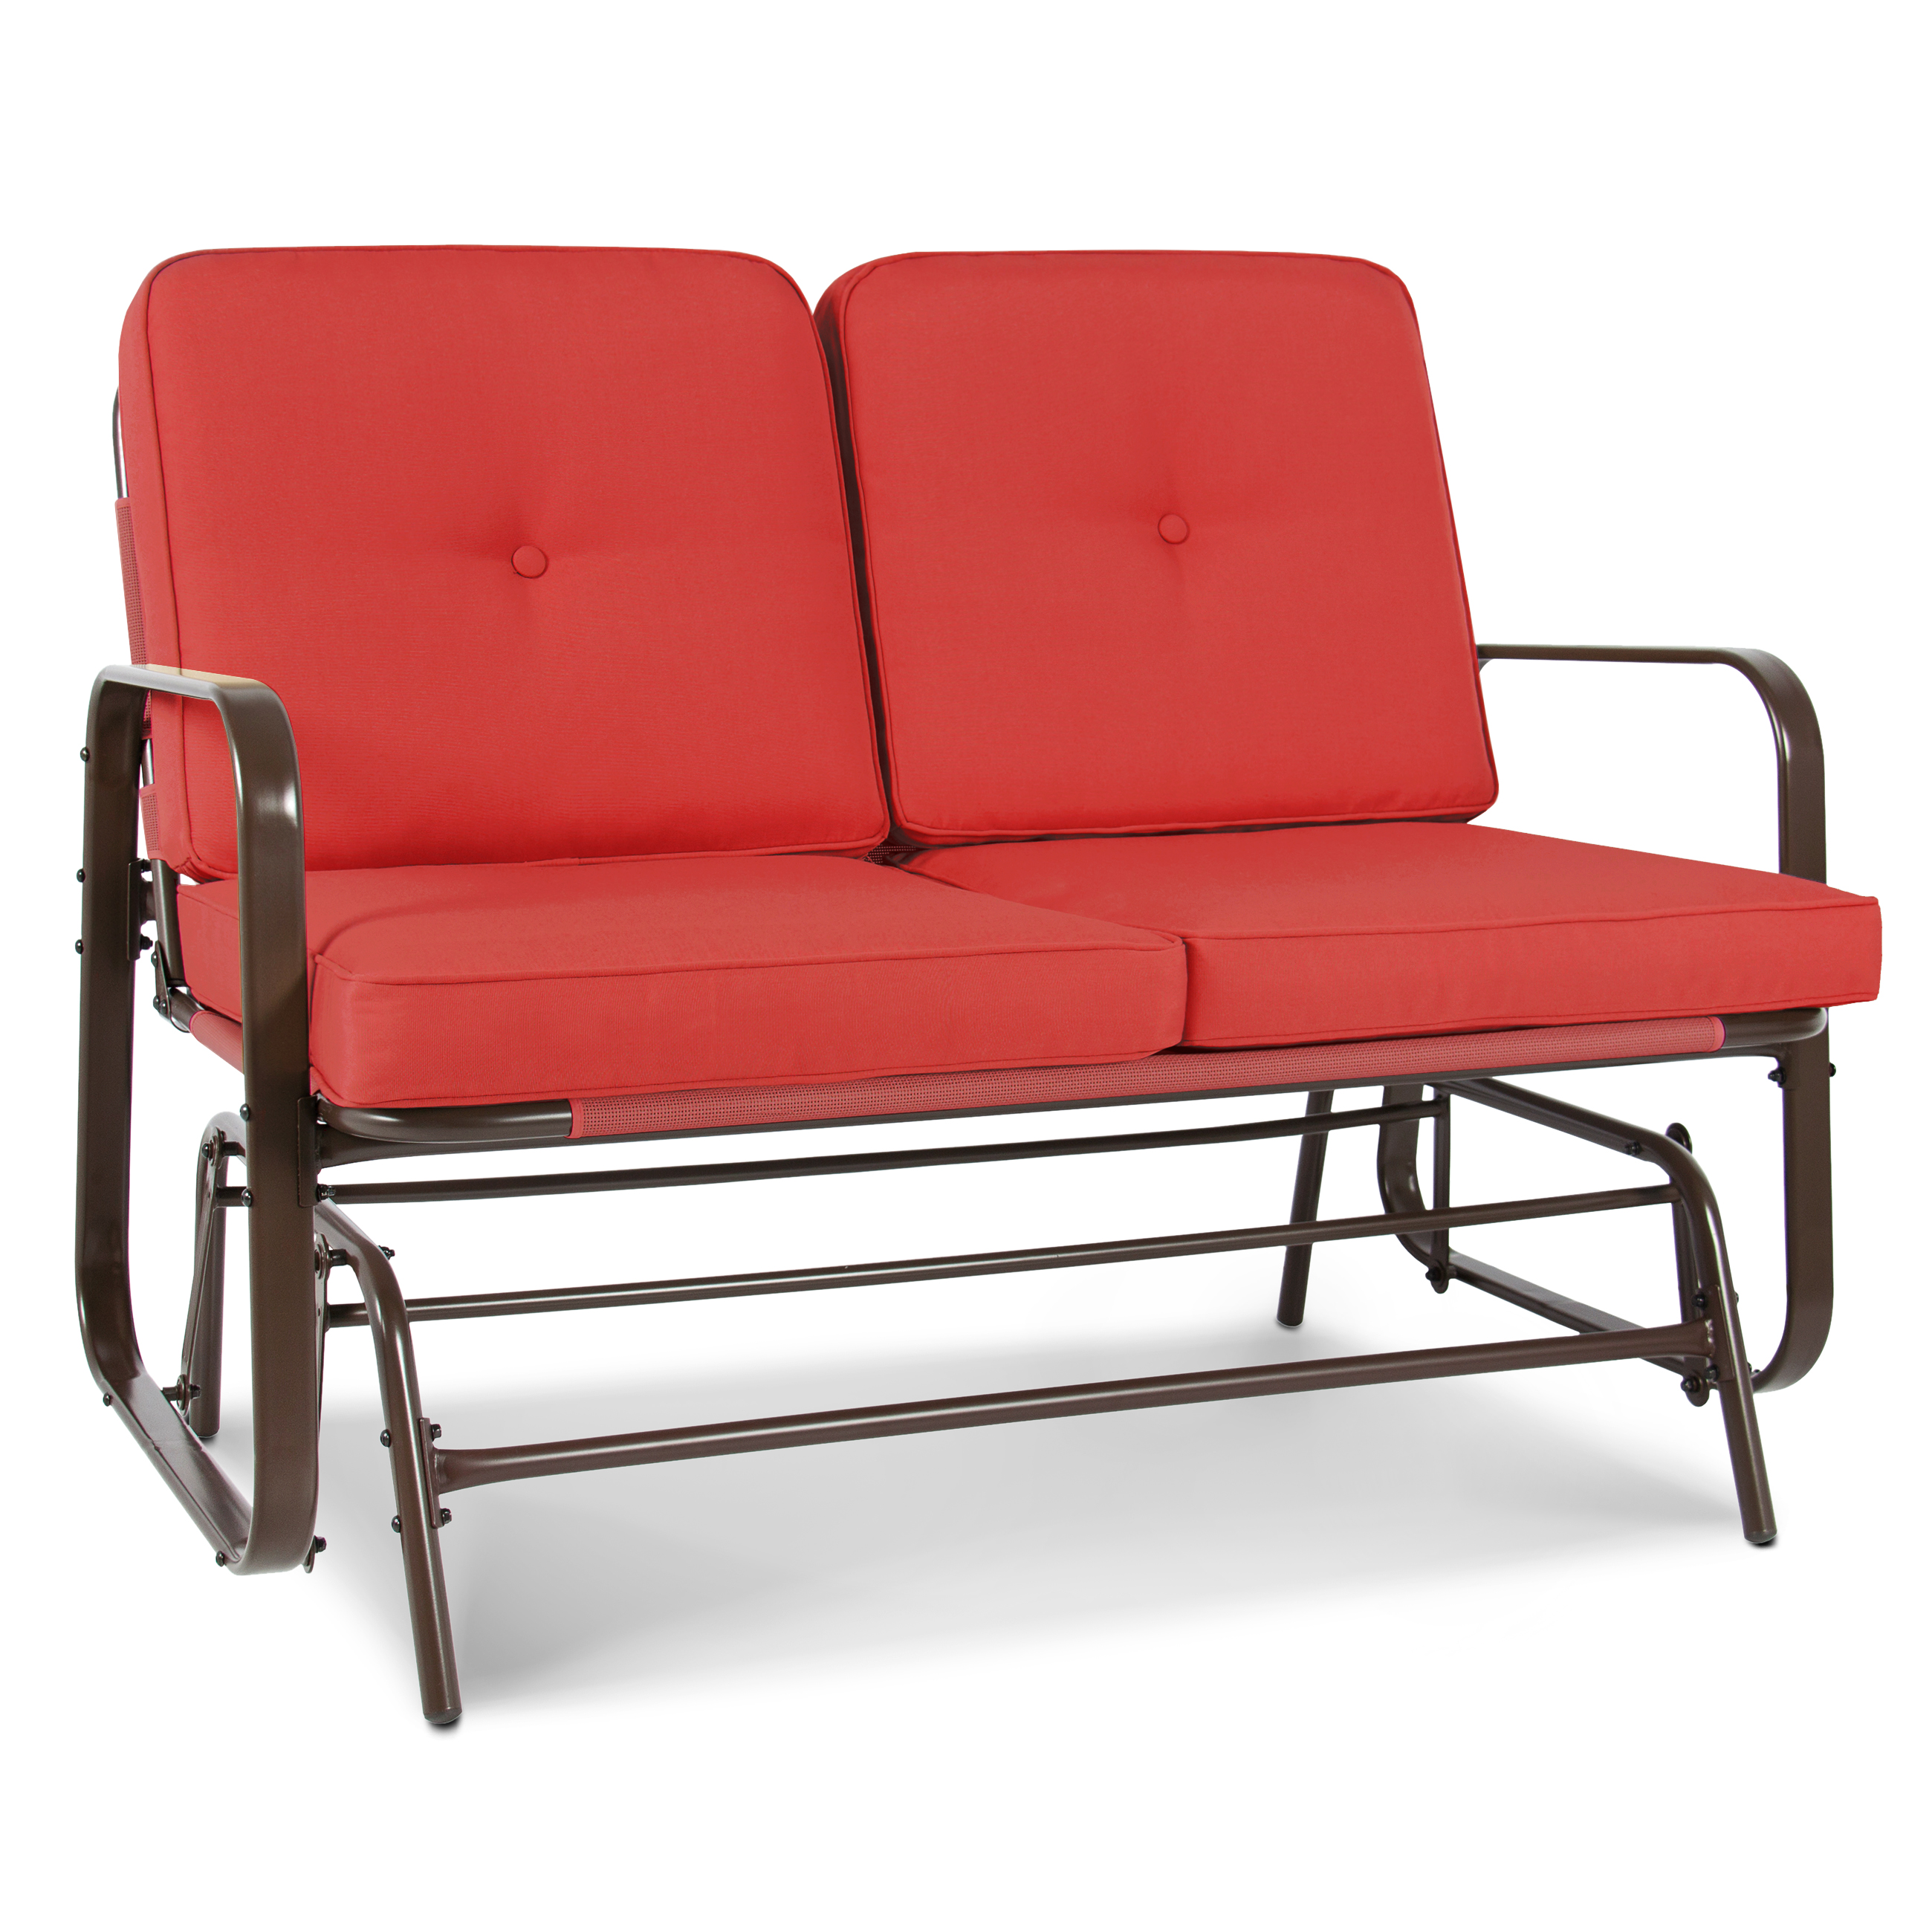 Best Choice Products 2 Person Loveseat Glider Rocking Cha...